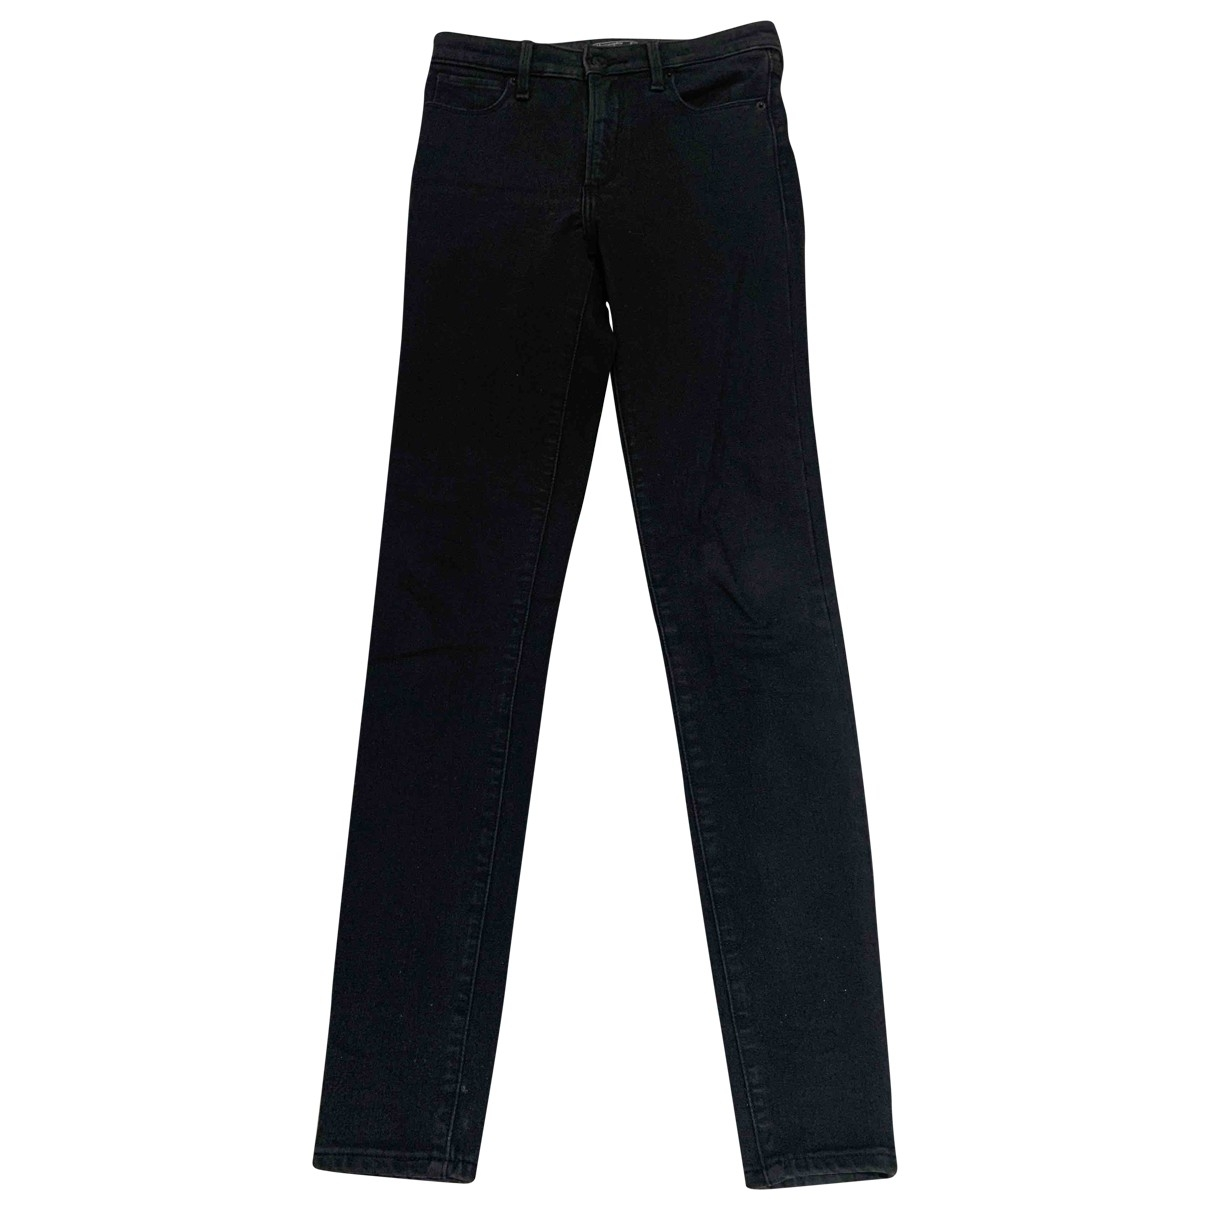 Abercrombie & Fitch \N Black Denim - Jeans Jeans for Women 24 US